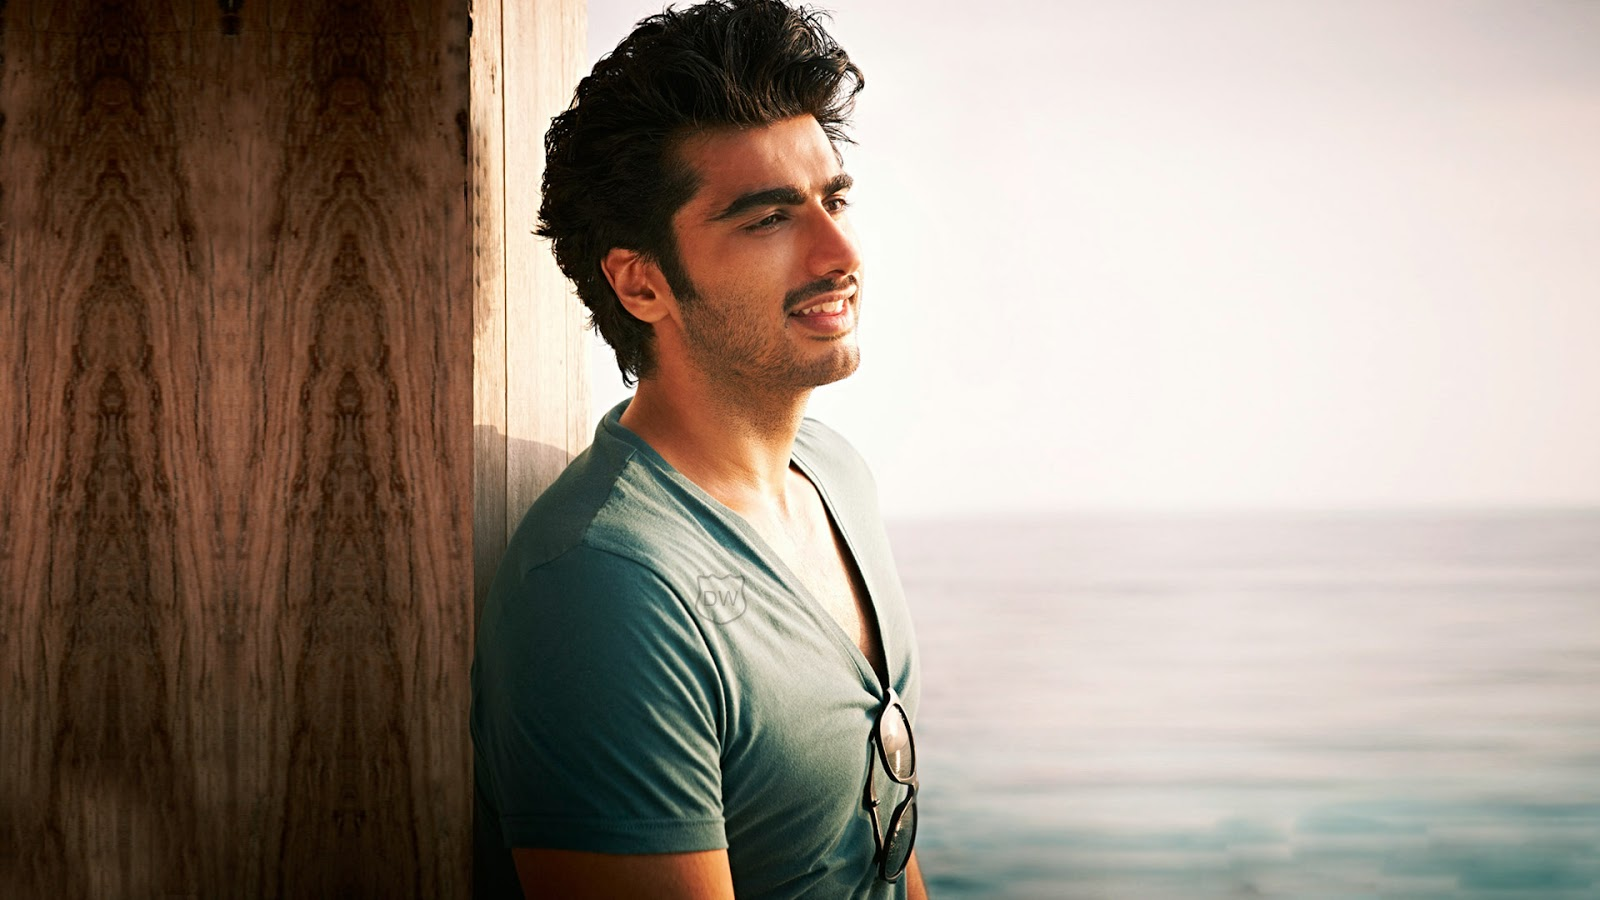 Photos of Arjun Kapoor